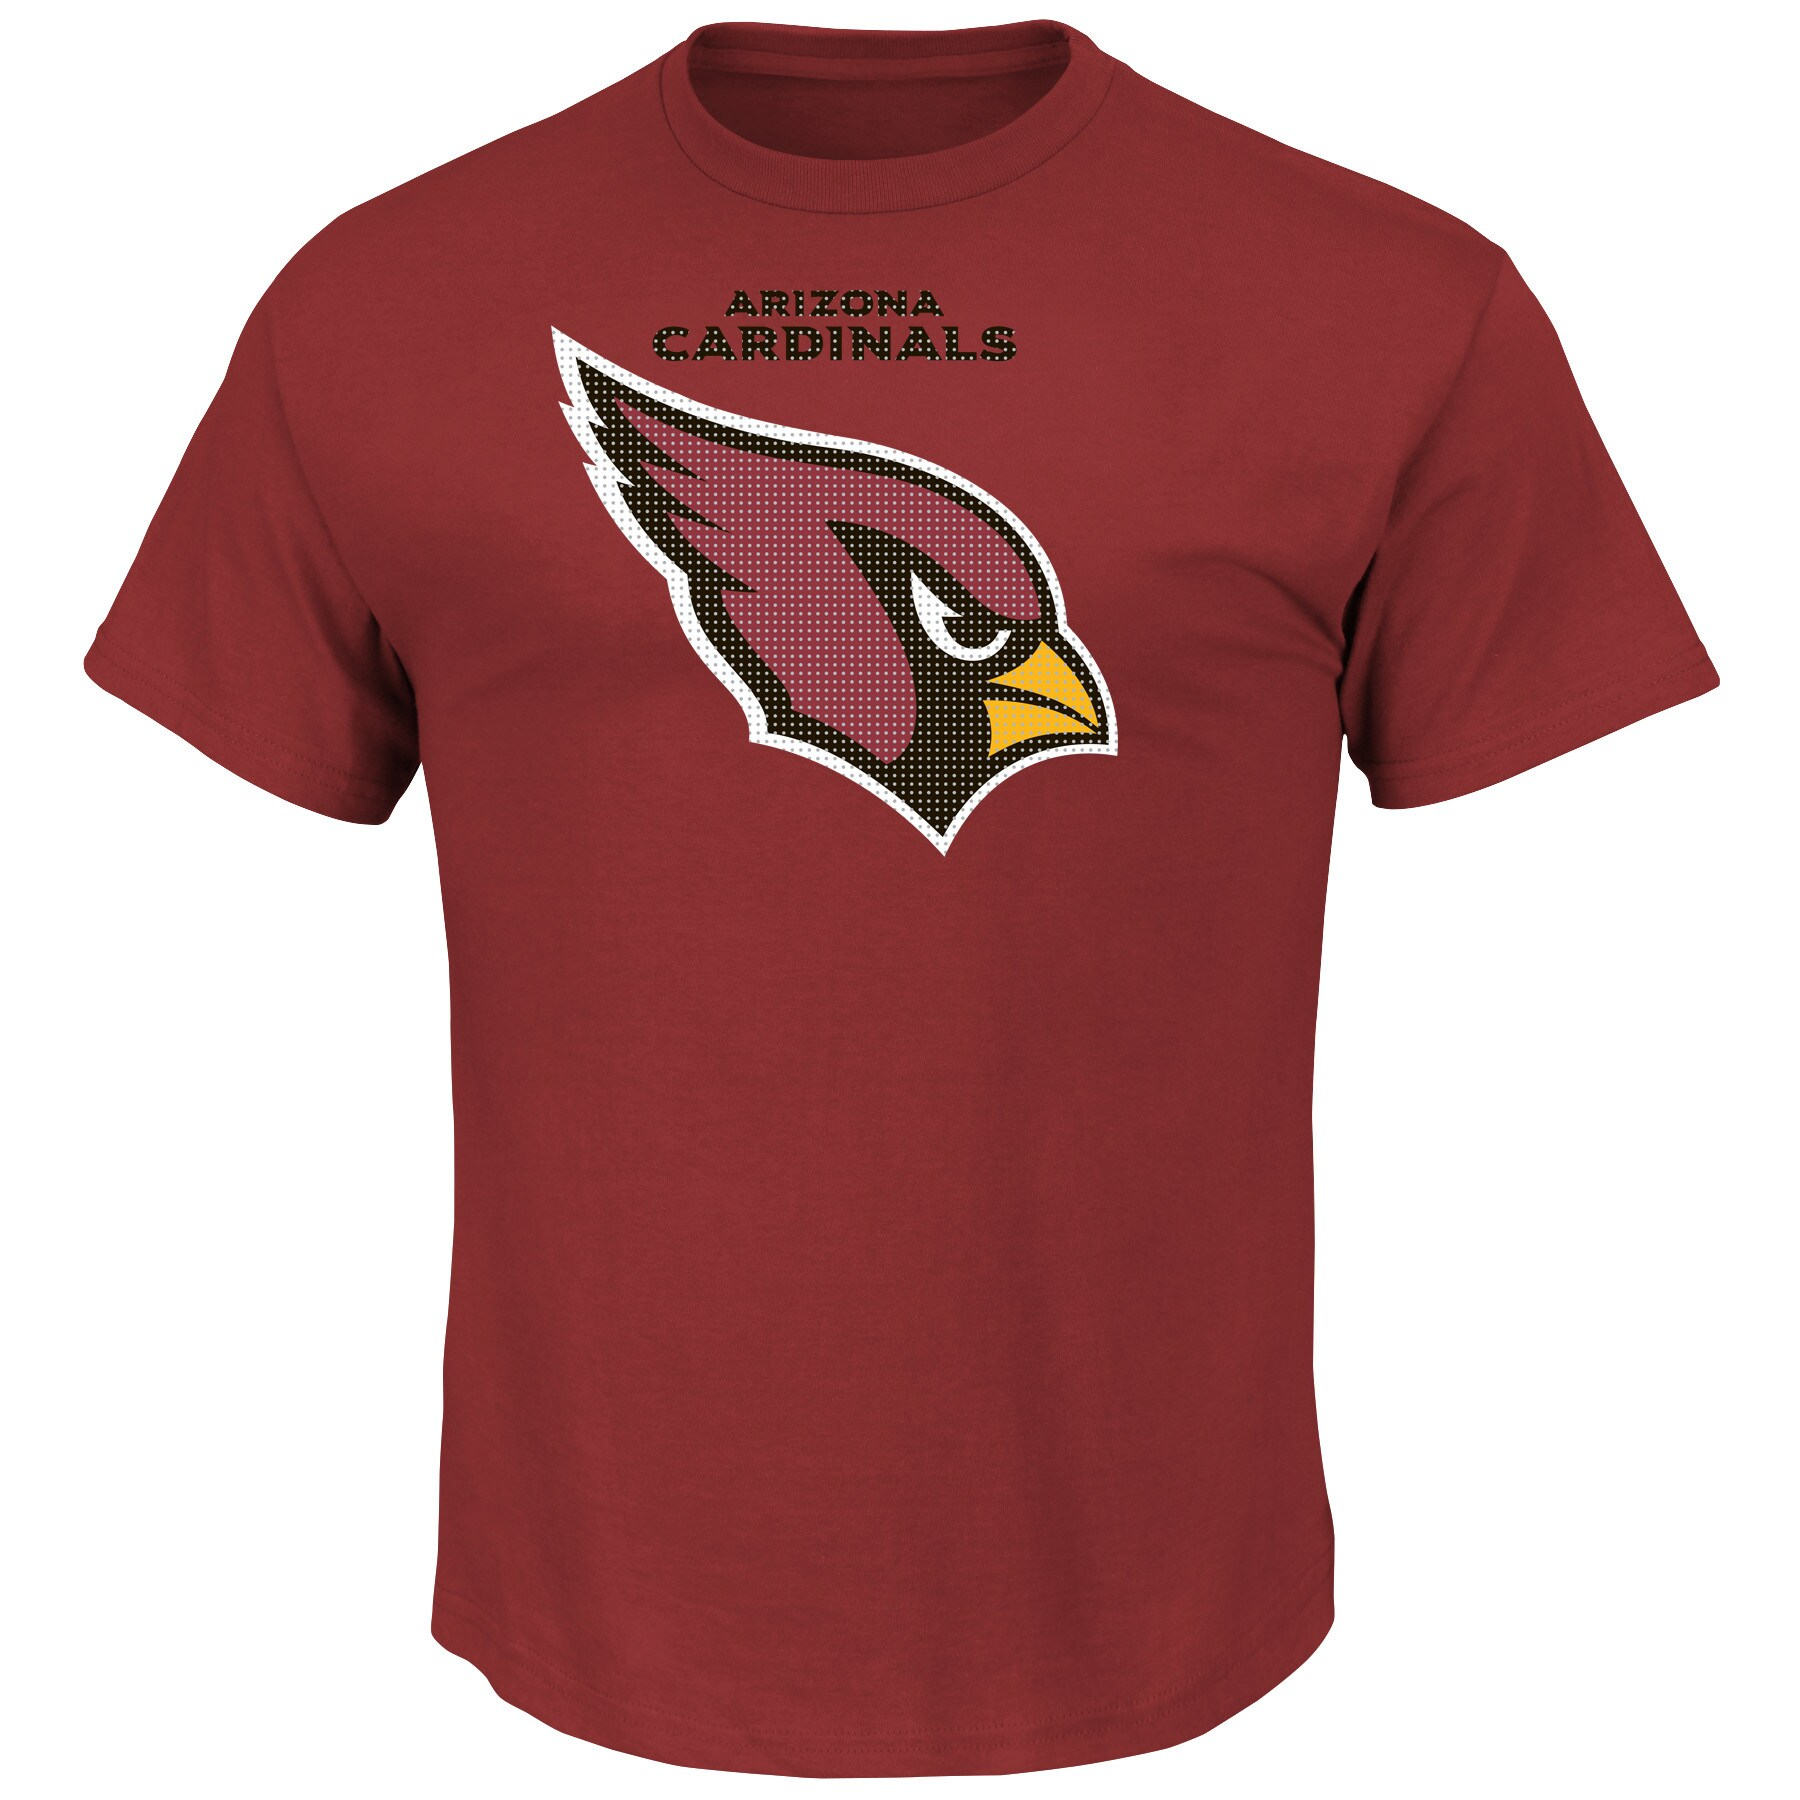 Arizona Cardinals Majestic Big & Tall Critcal Victory II T-Shirt - Cardinal